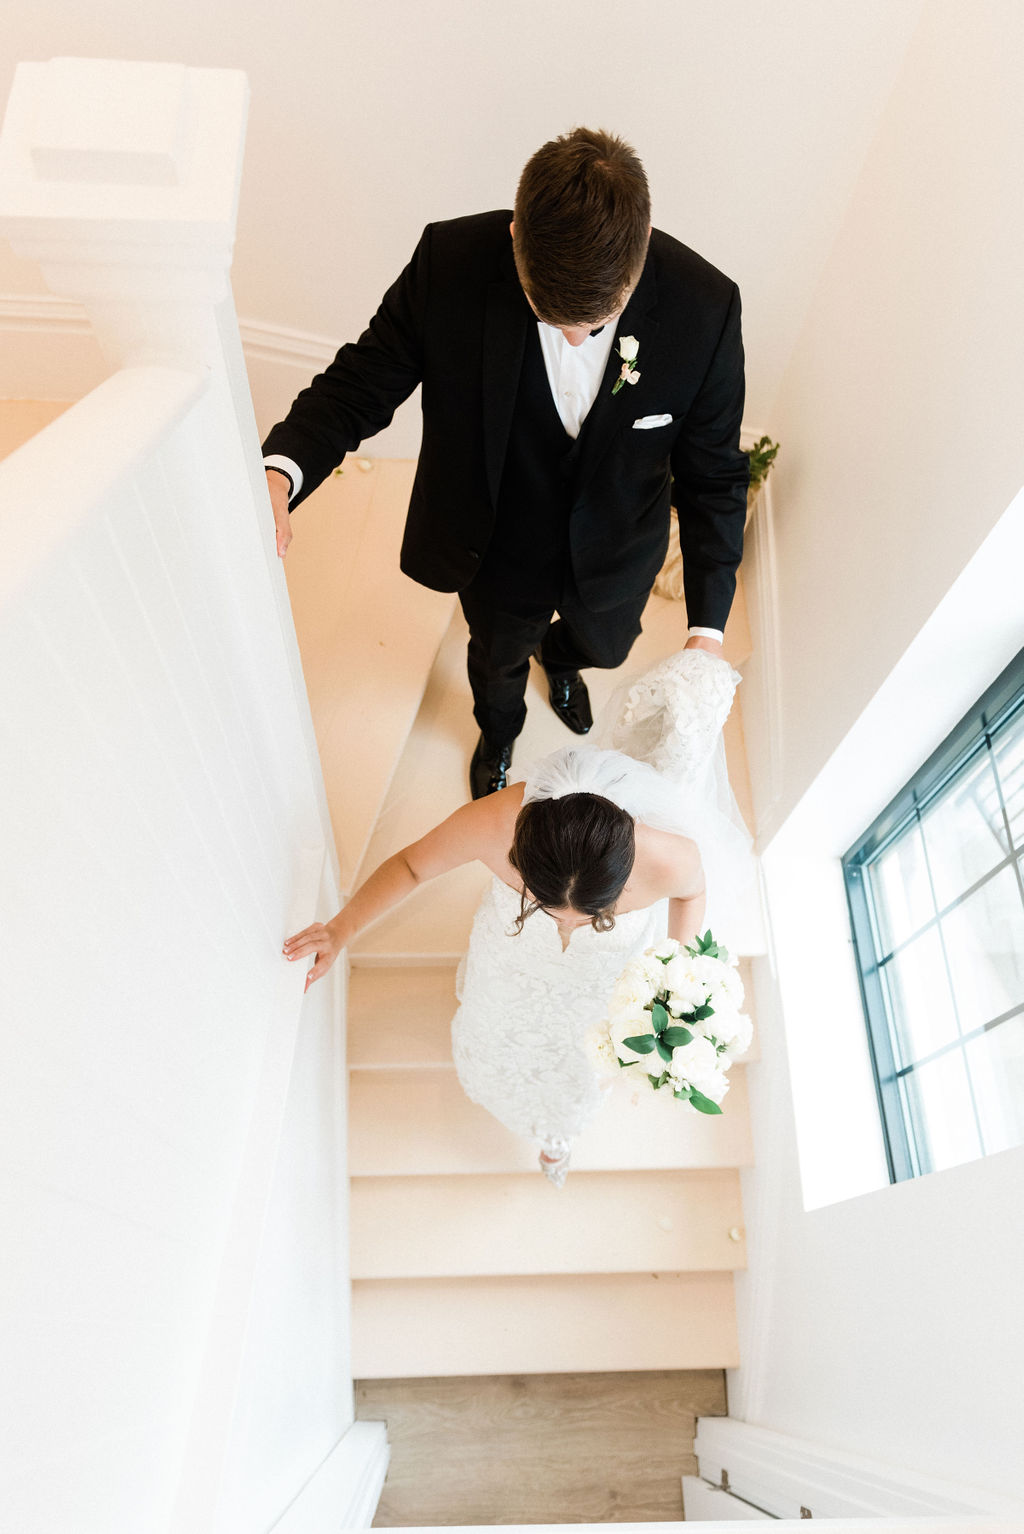 Couple walking down the stairs after their wedding at the Loft 310 Chapel